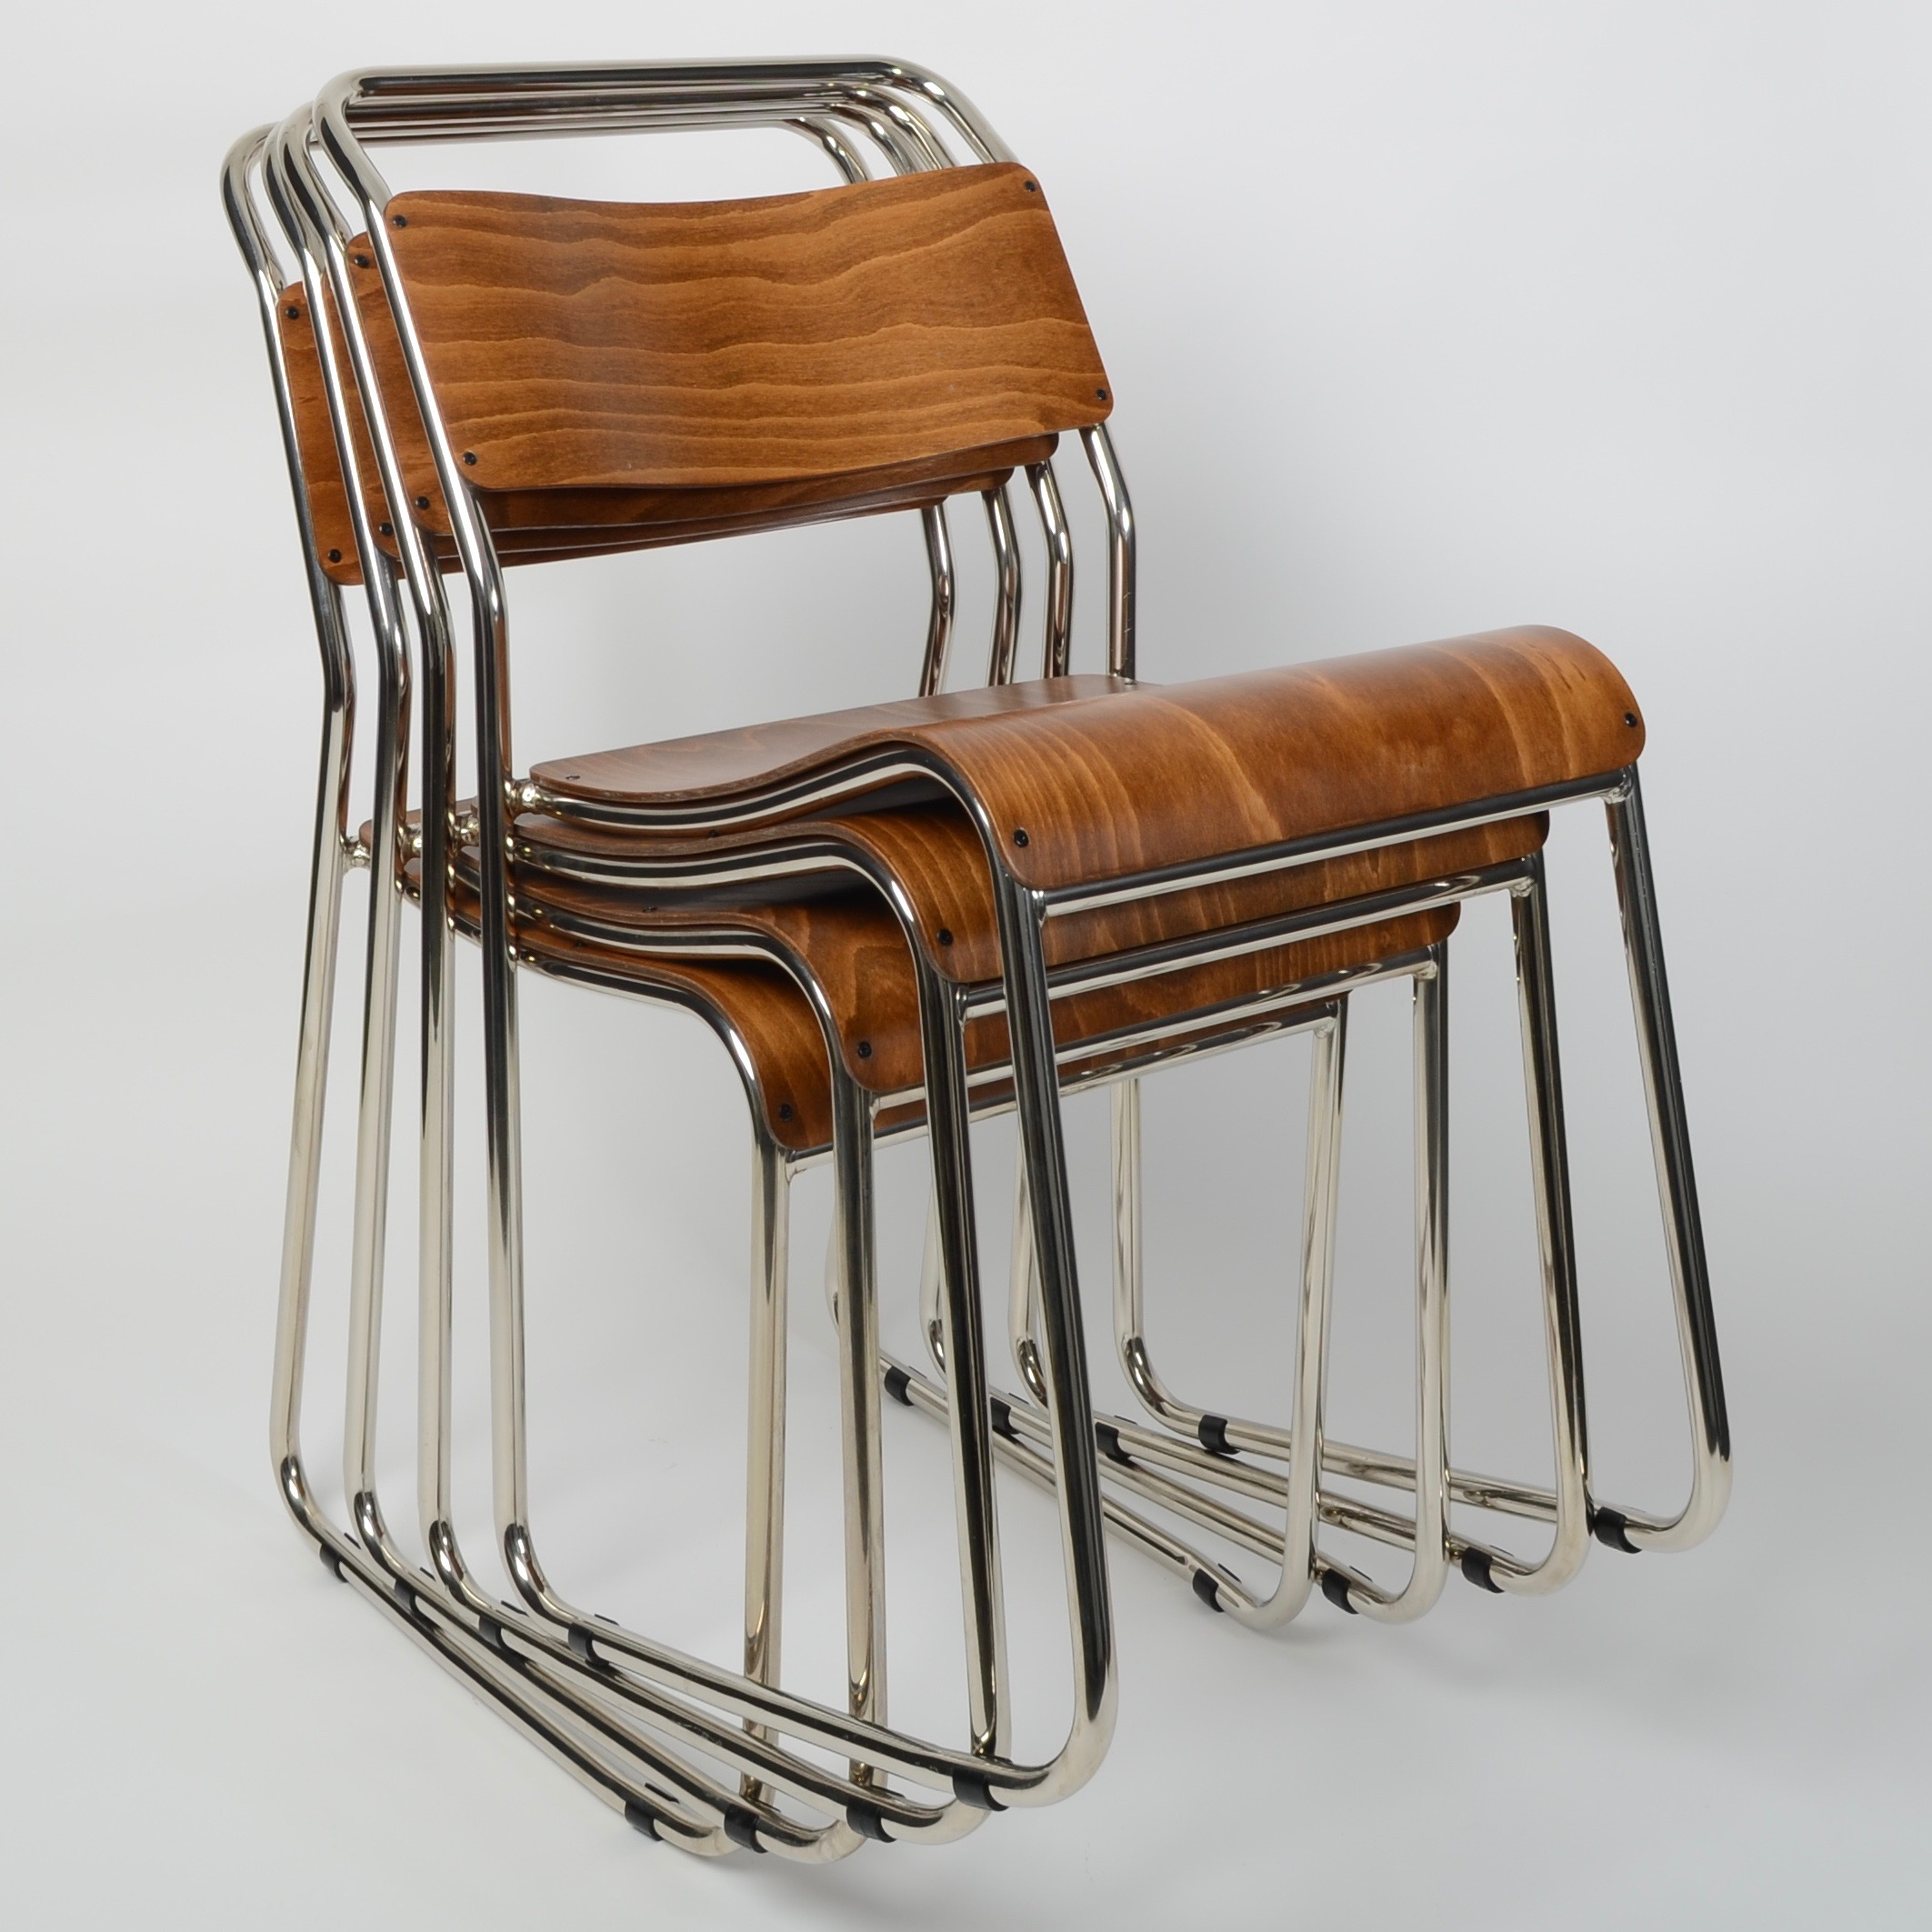 Nickel plated plywood stacking chair